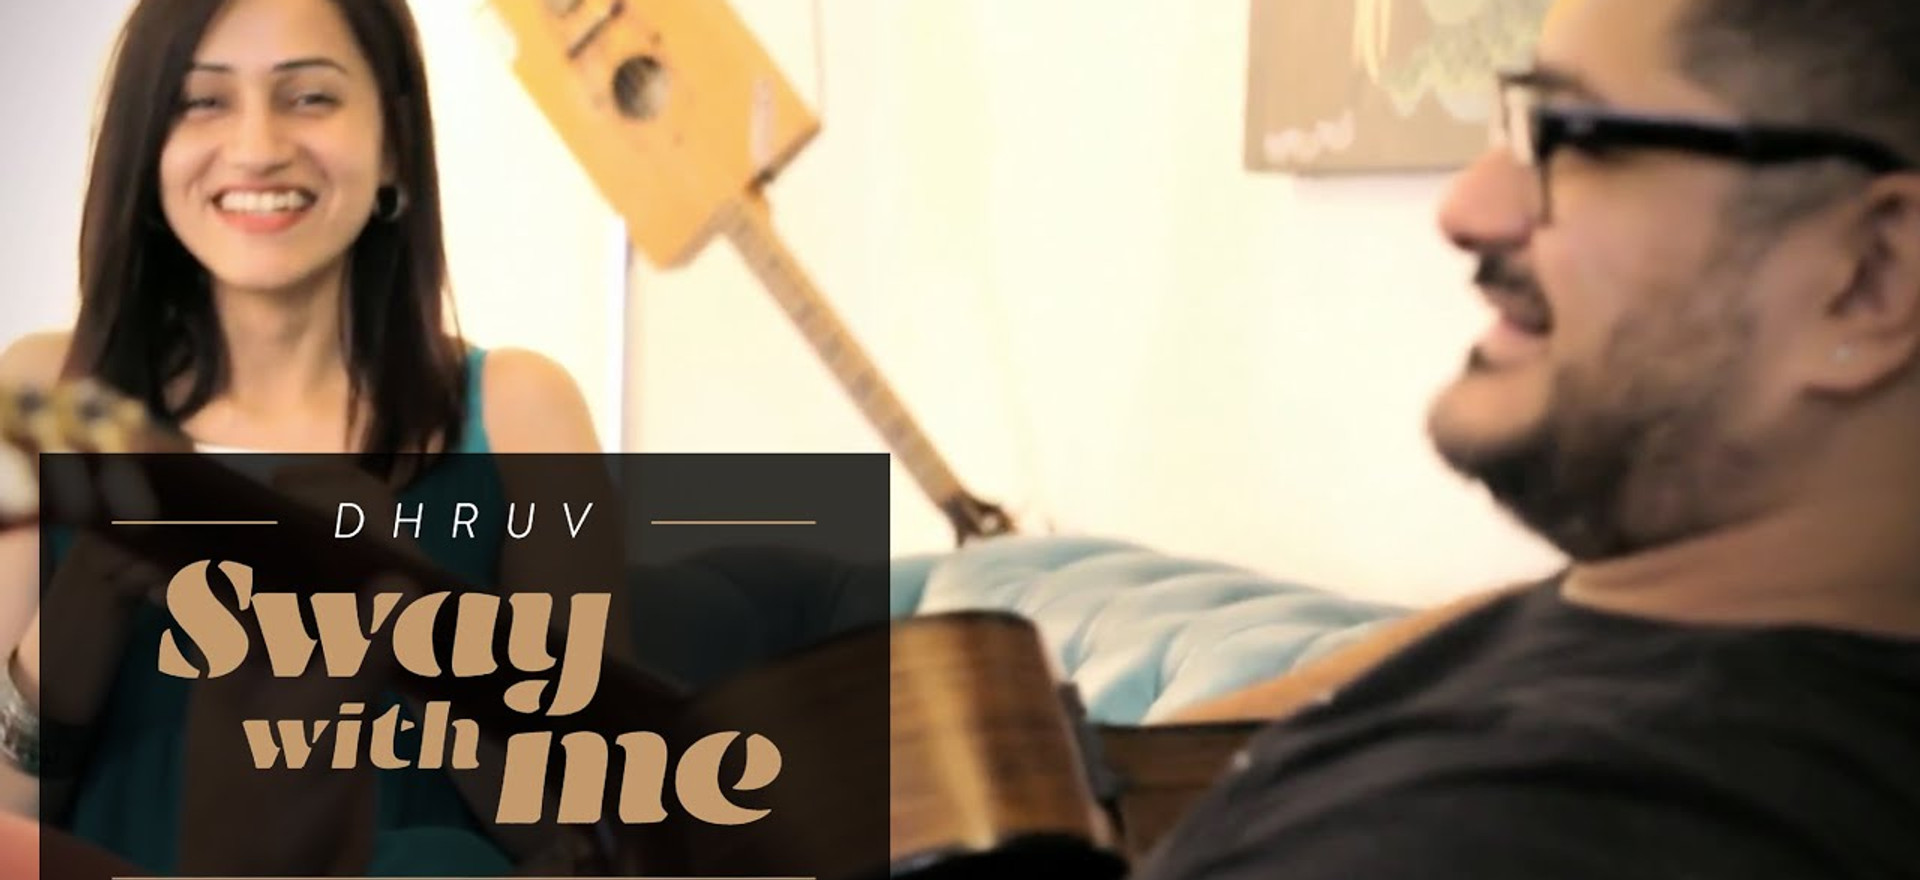 Sway With Me - Dhruv Feat. Vasuda Sharma   Official Music Video